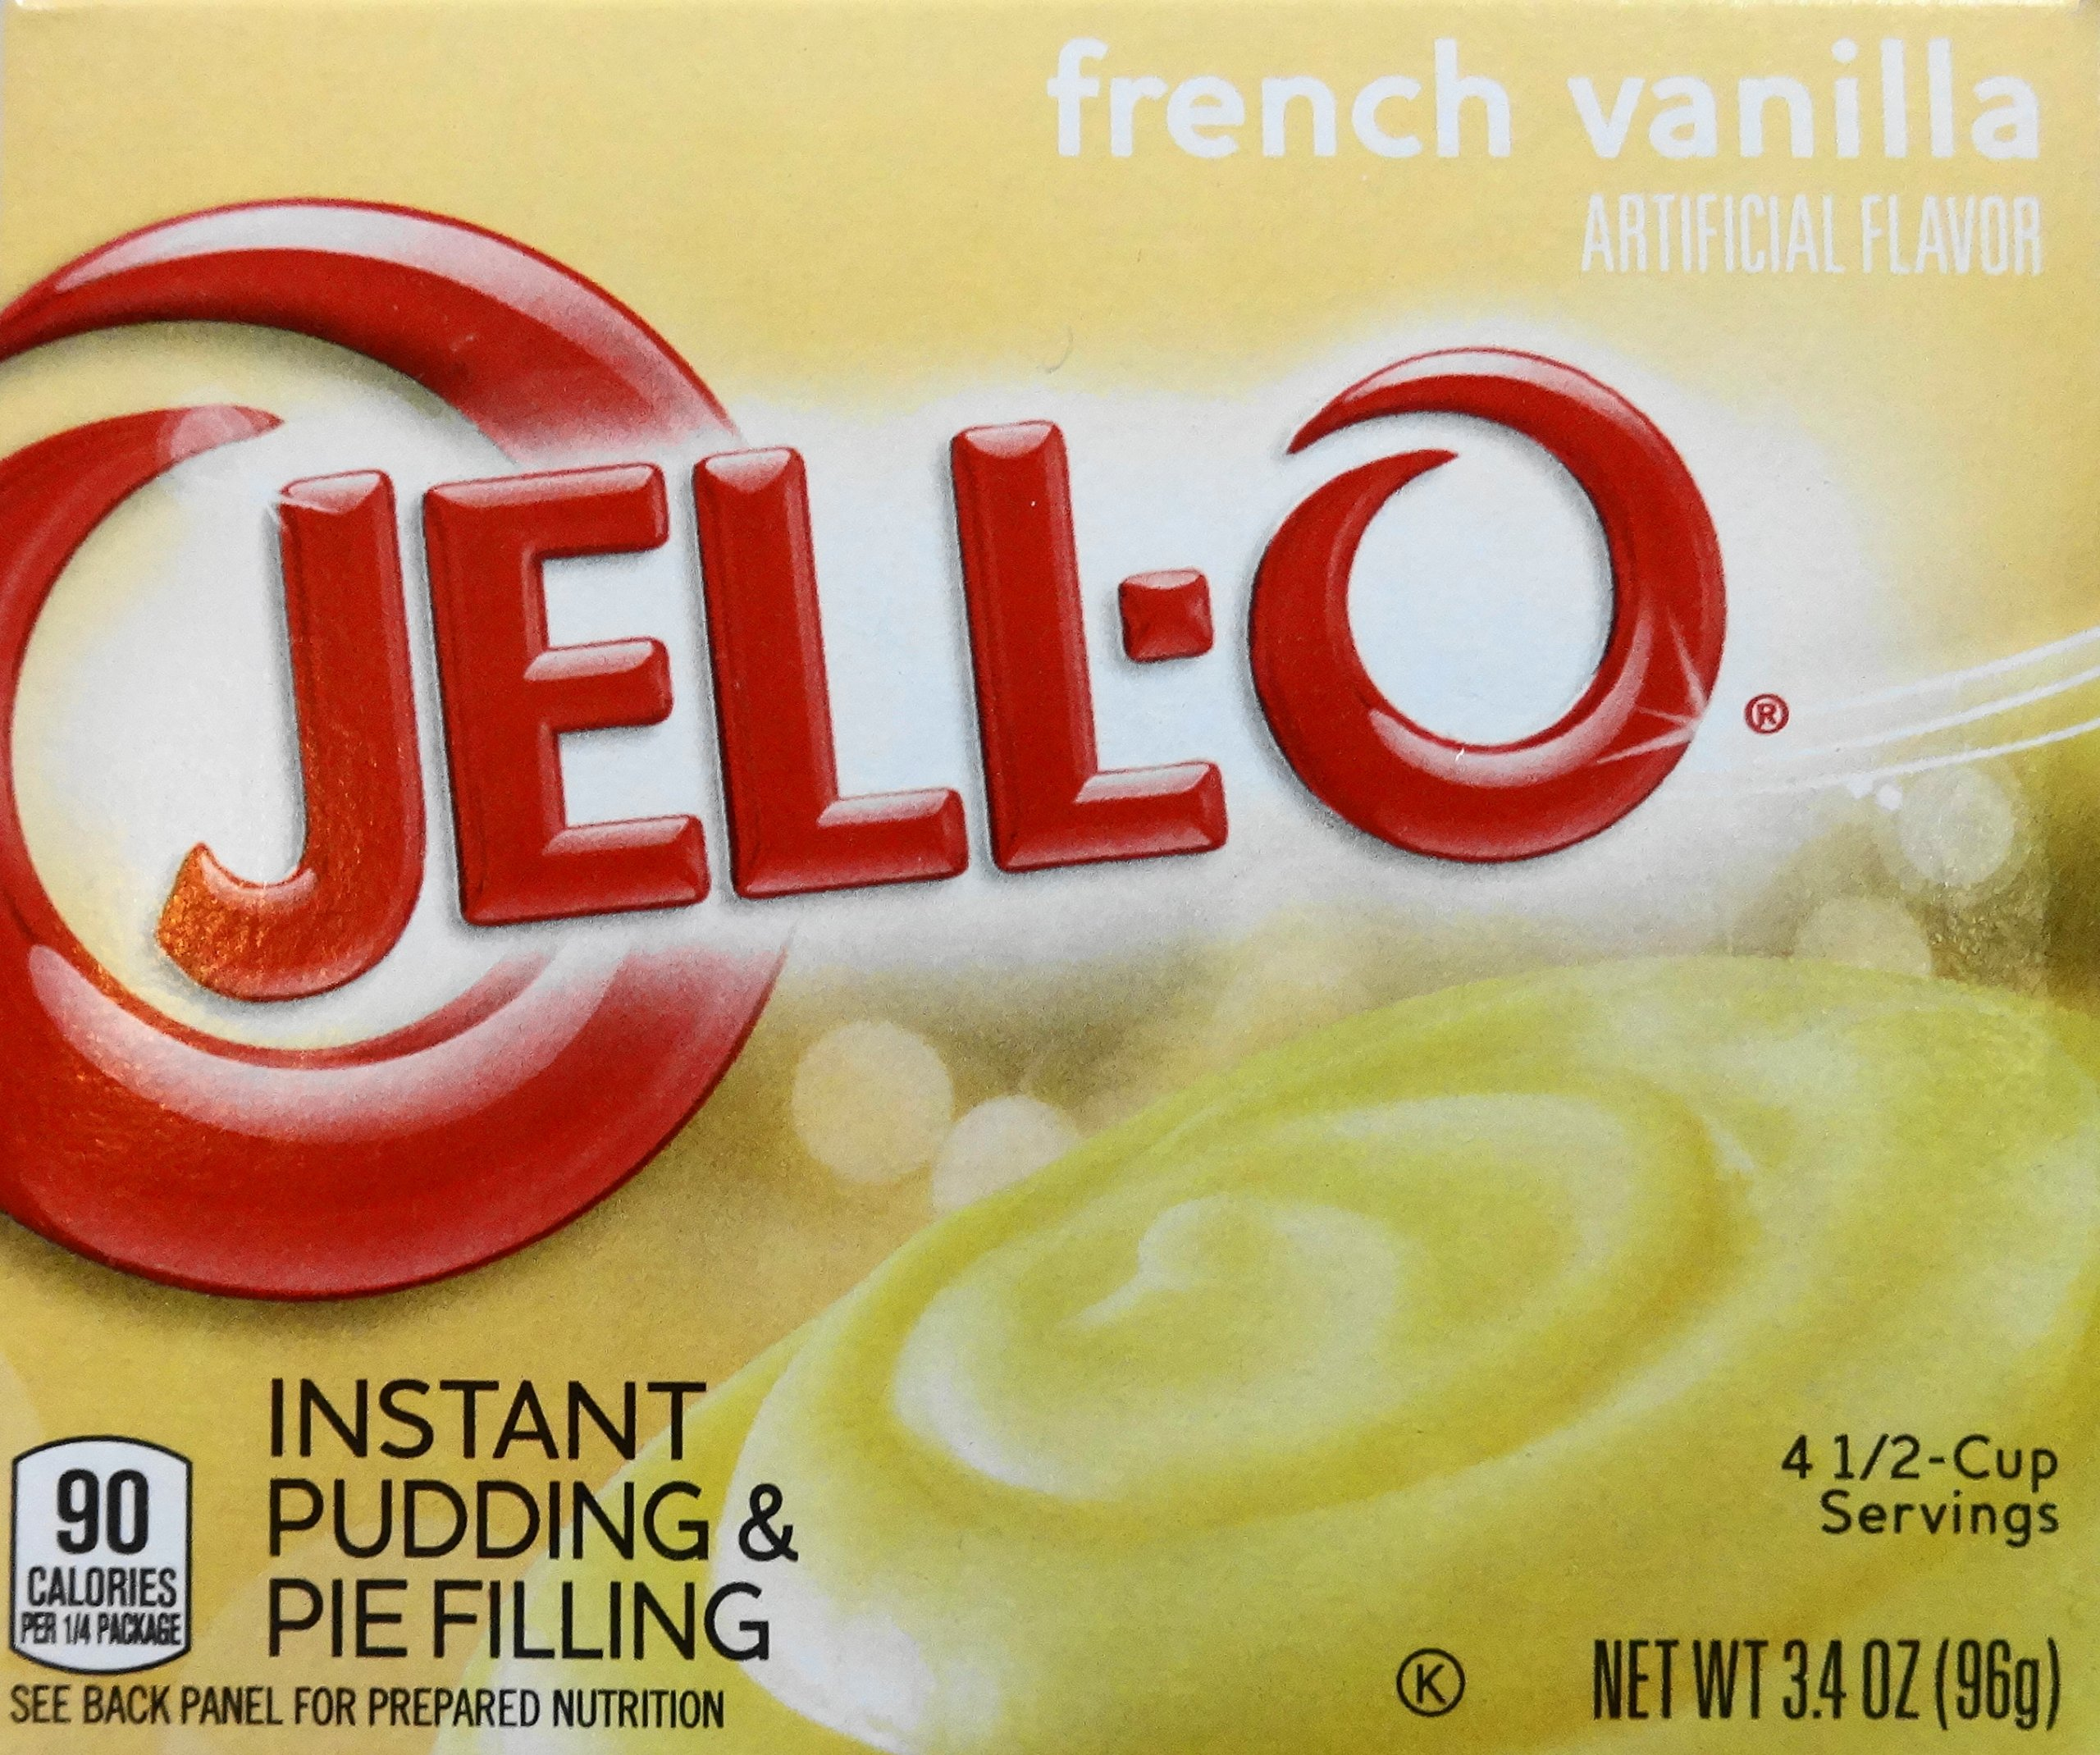 Jell-O French Vanilla Instant Pudding, 3.4 oz (3-Pack) by Jell-O